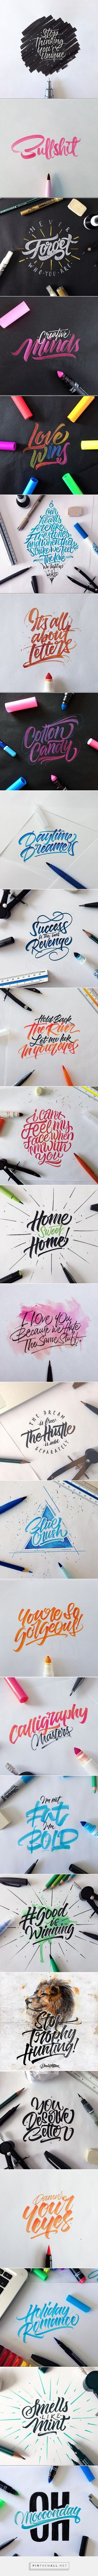 Crayola & Brushpen Lettering Set 3 on Behance - created via http://pinthemall.net